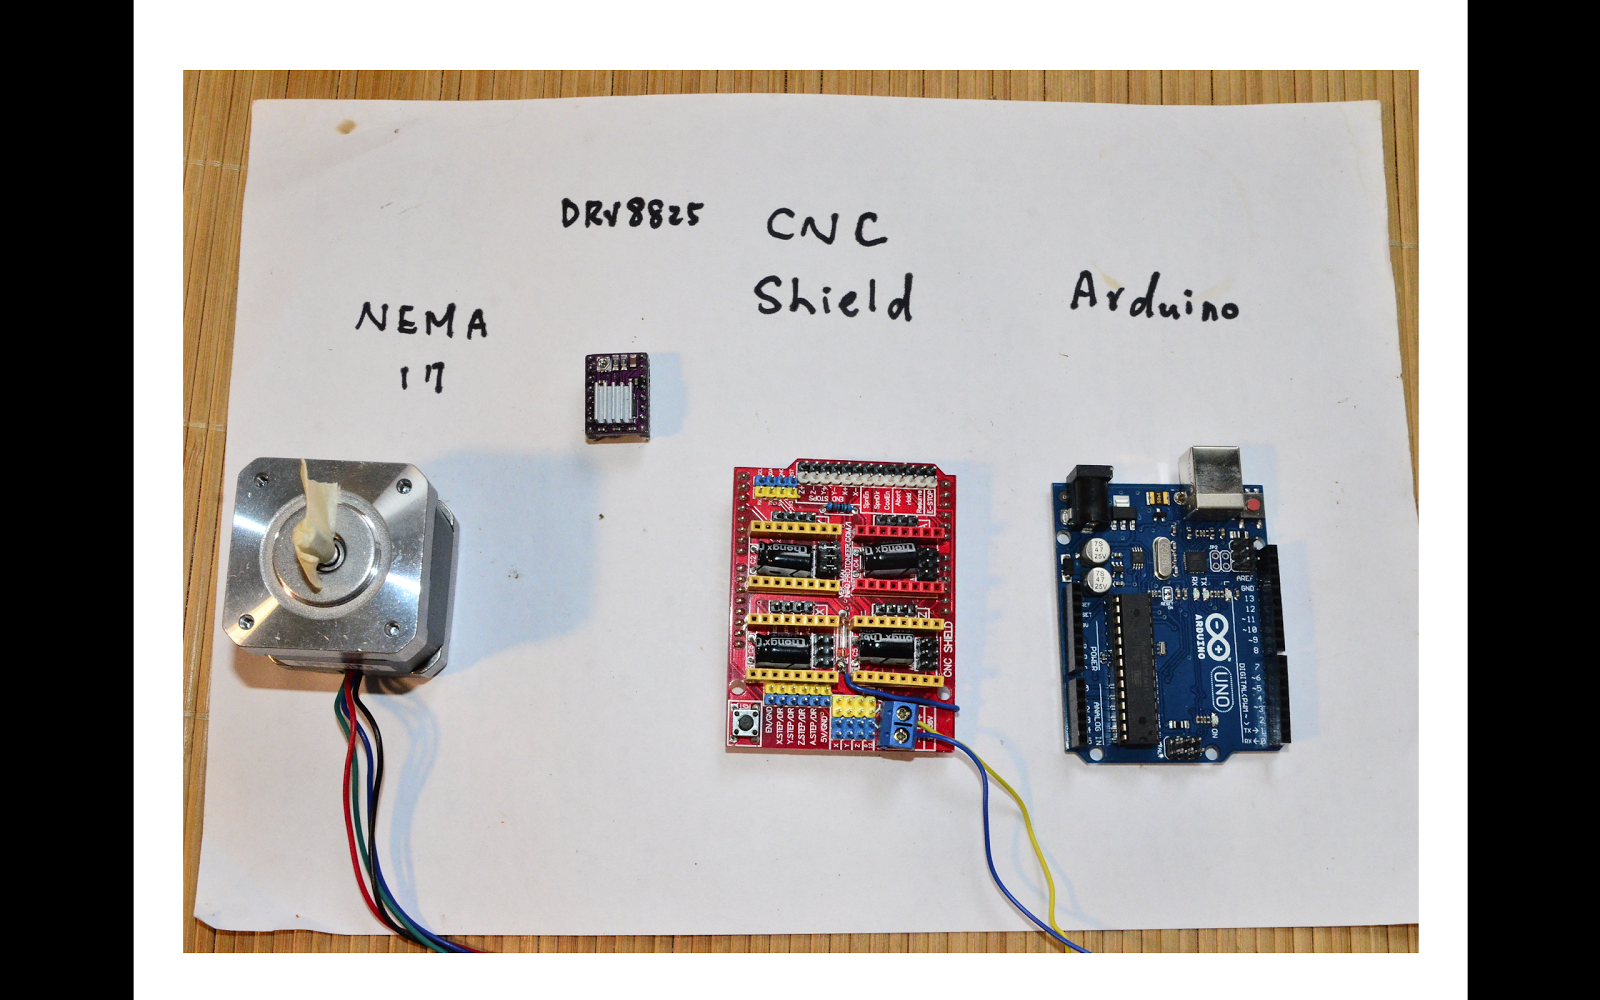 small resolution of cnc shield is quite useful for stepper motor driving here i demonstrated how to use simple arduino code to drive stepper motor with drv8825